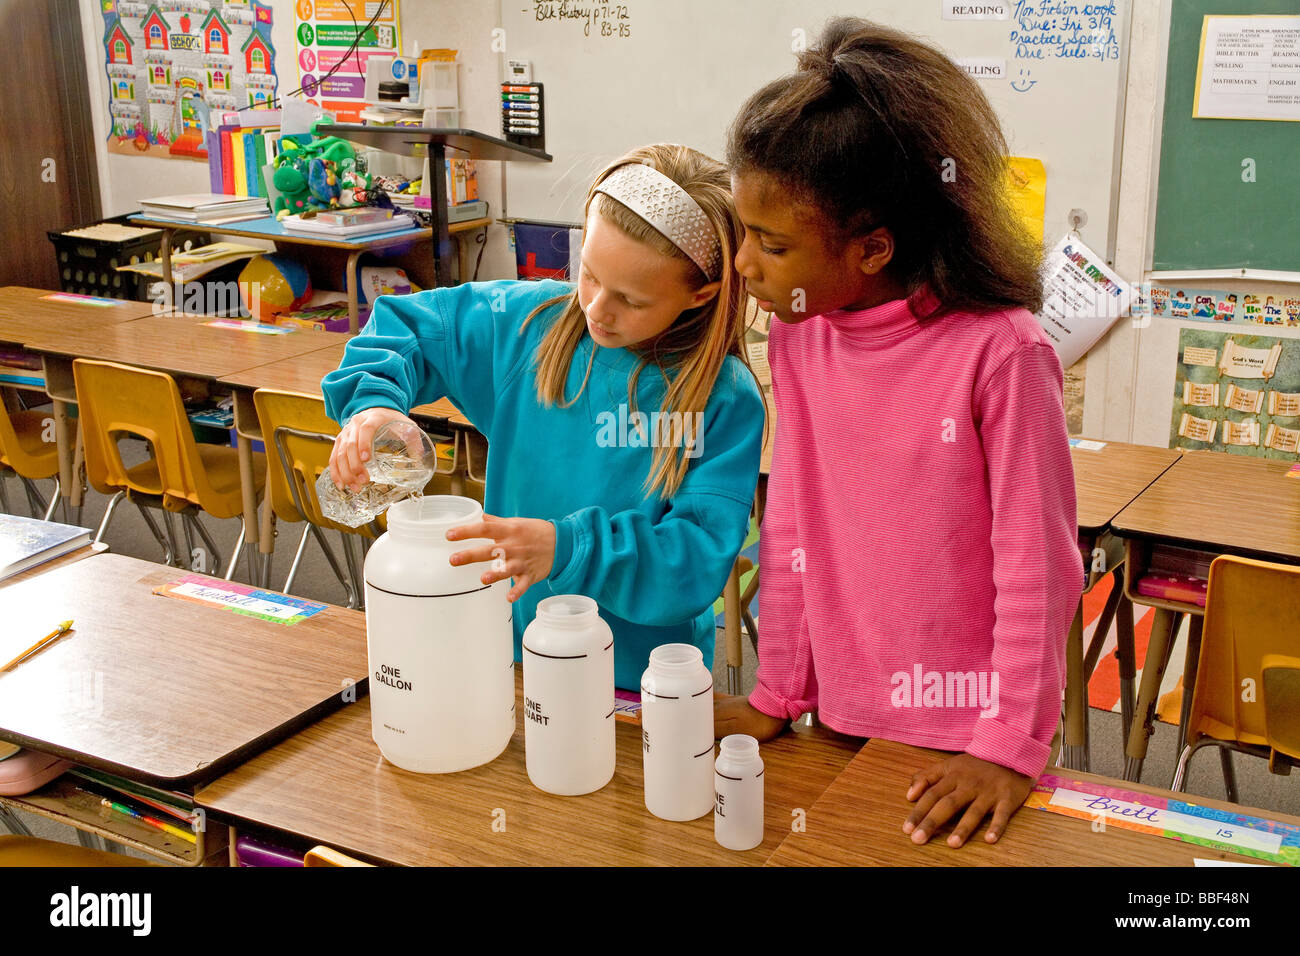 Two focused girls 8-9 year old pouring fluid contanier children inter racial  racially diverse multicultural cultural Stock Photo